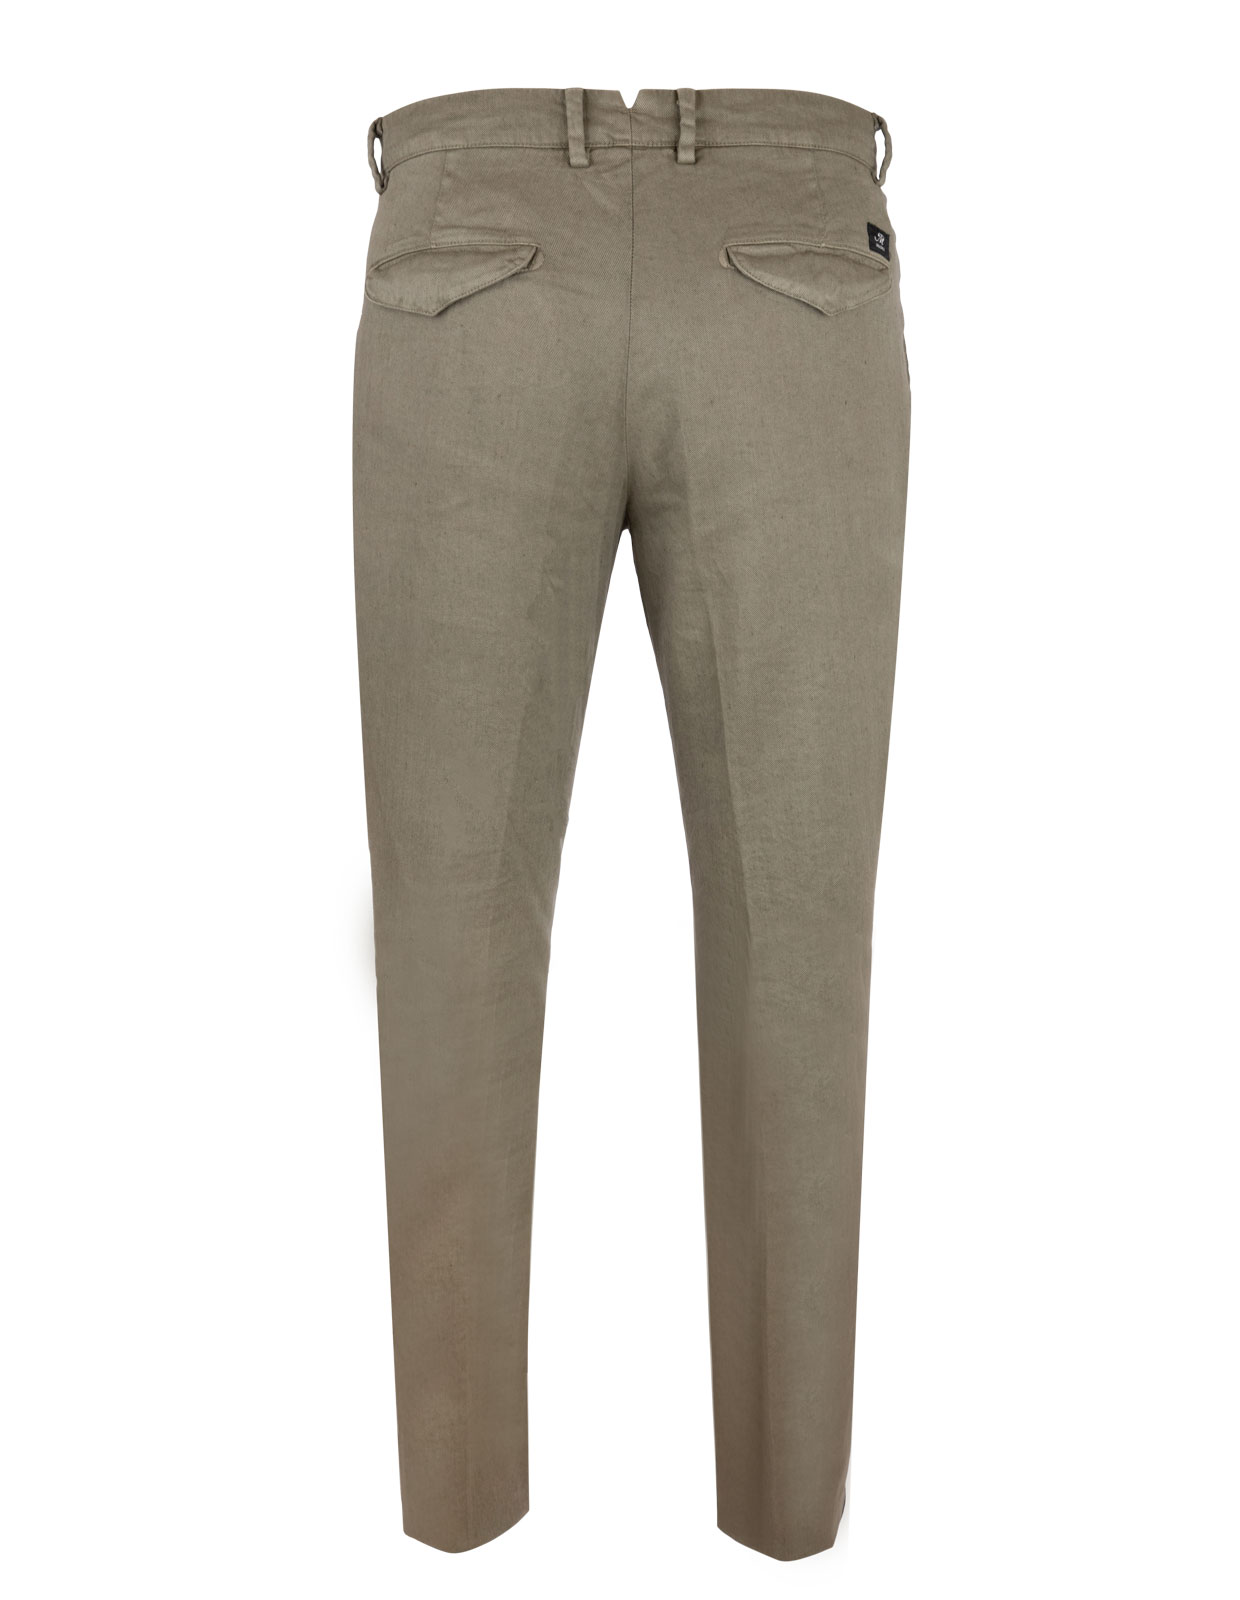 Amalfi Pleat Chinos Linen Cotton Stretch Military